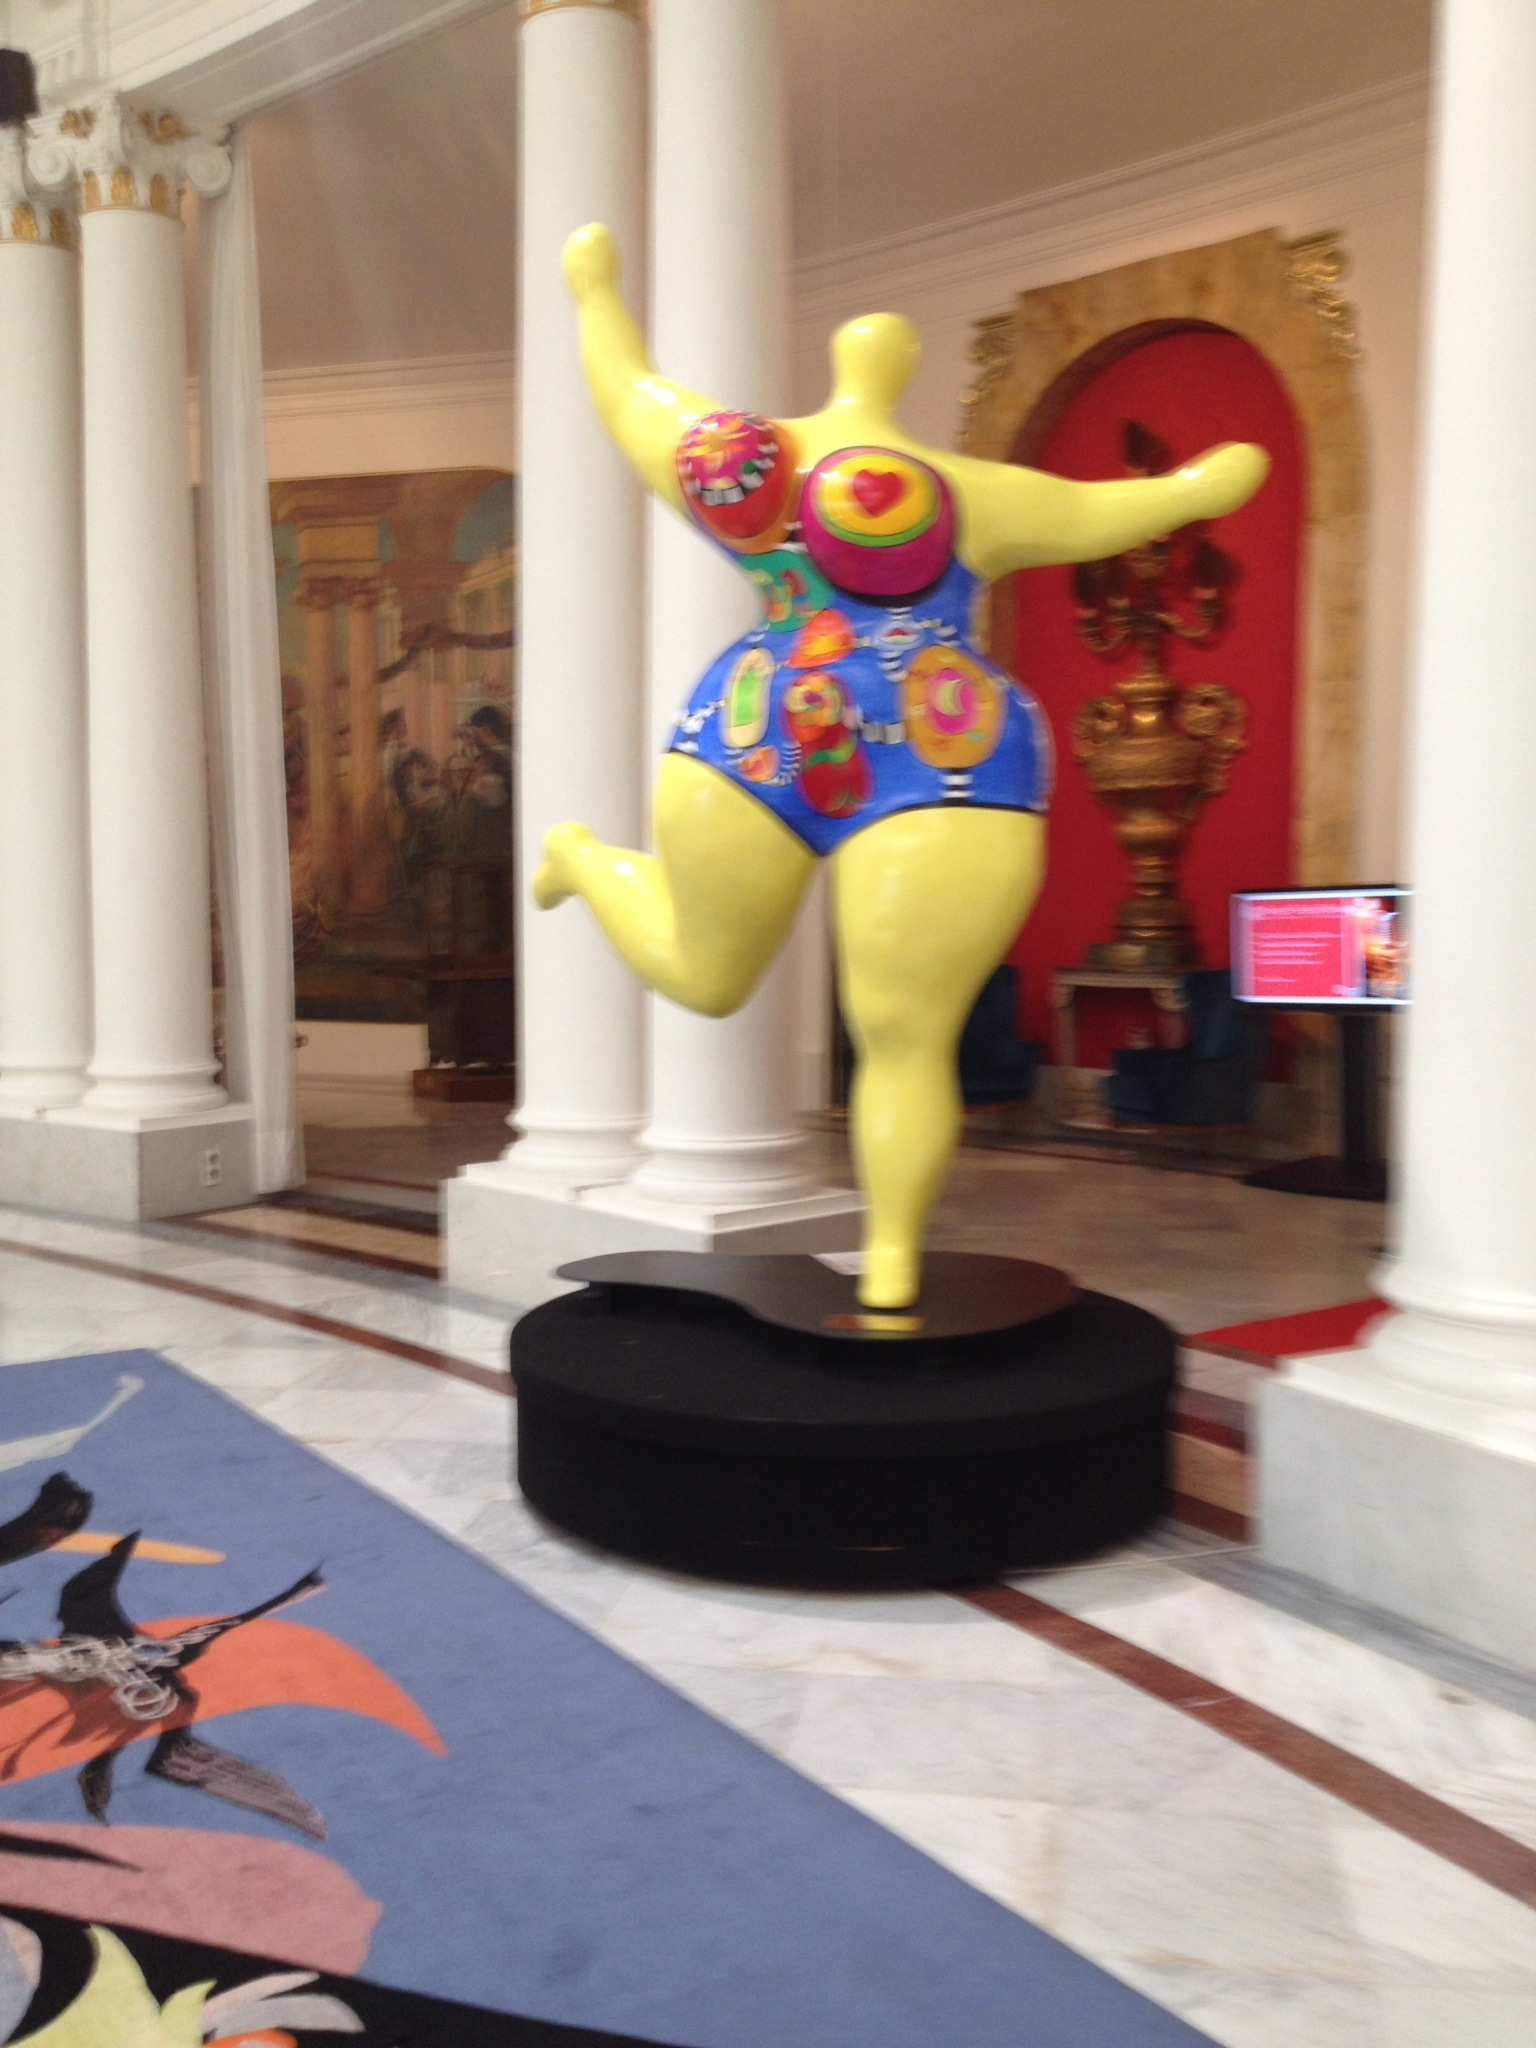 Many beautiful art opportunities in Le Negresco Hotel